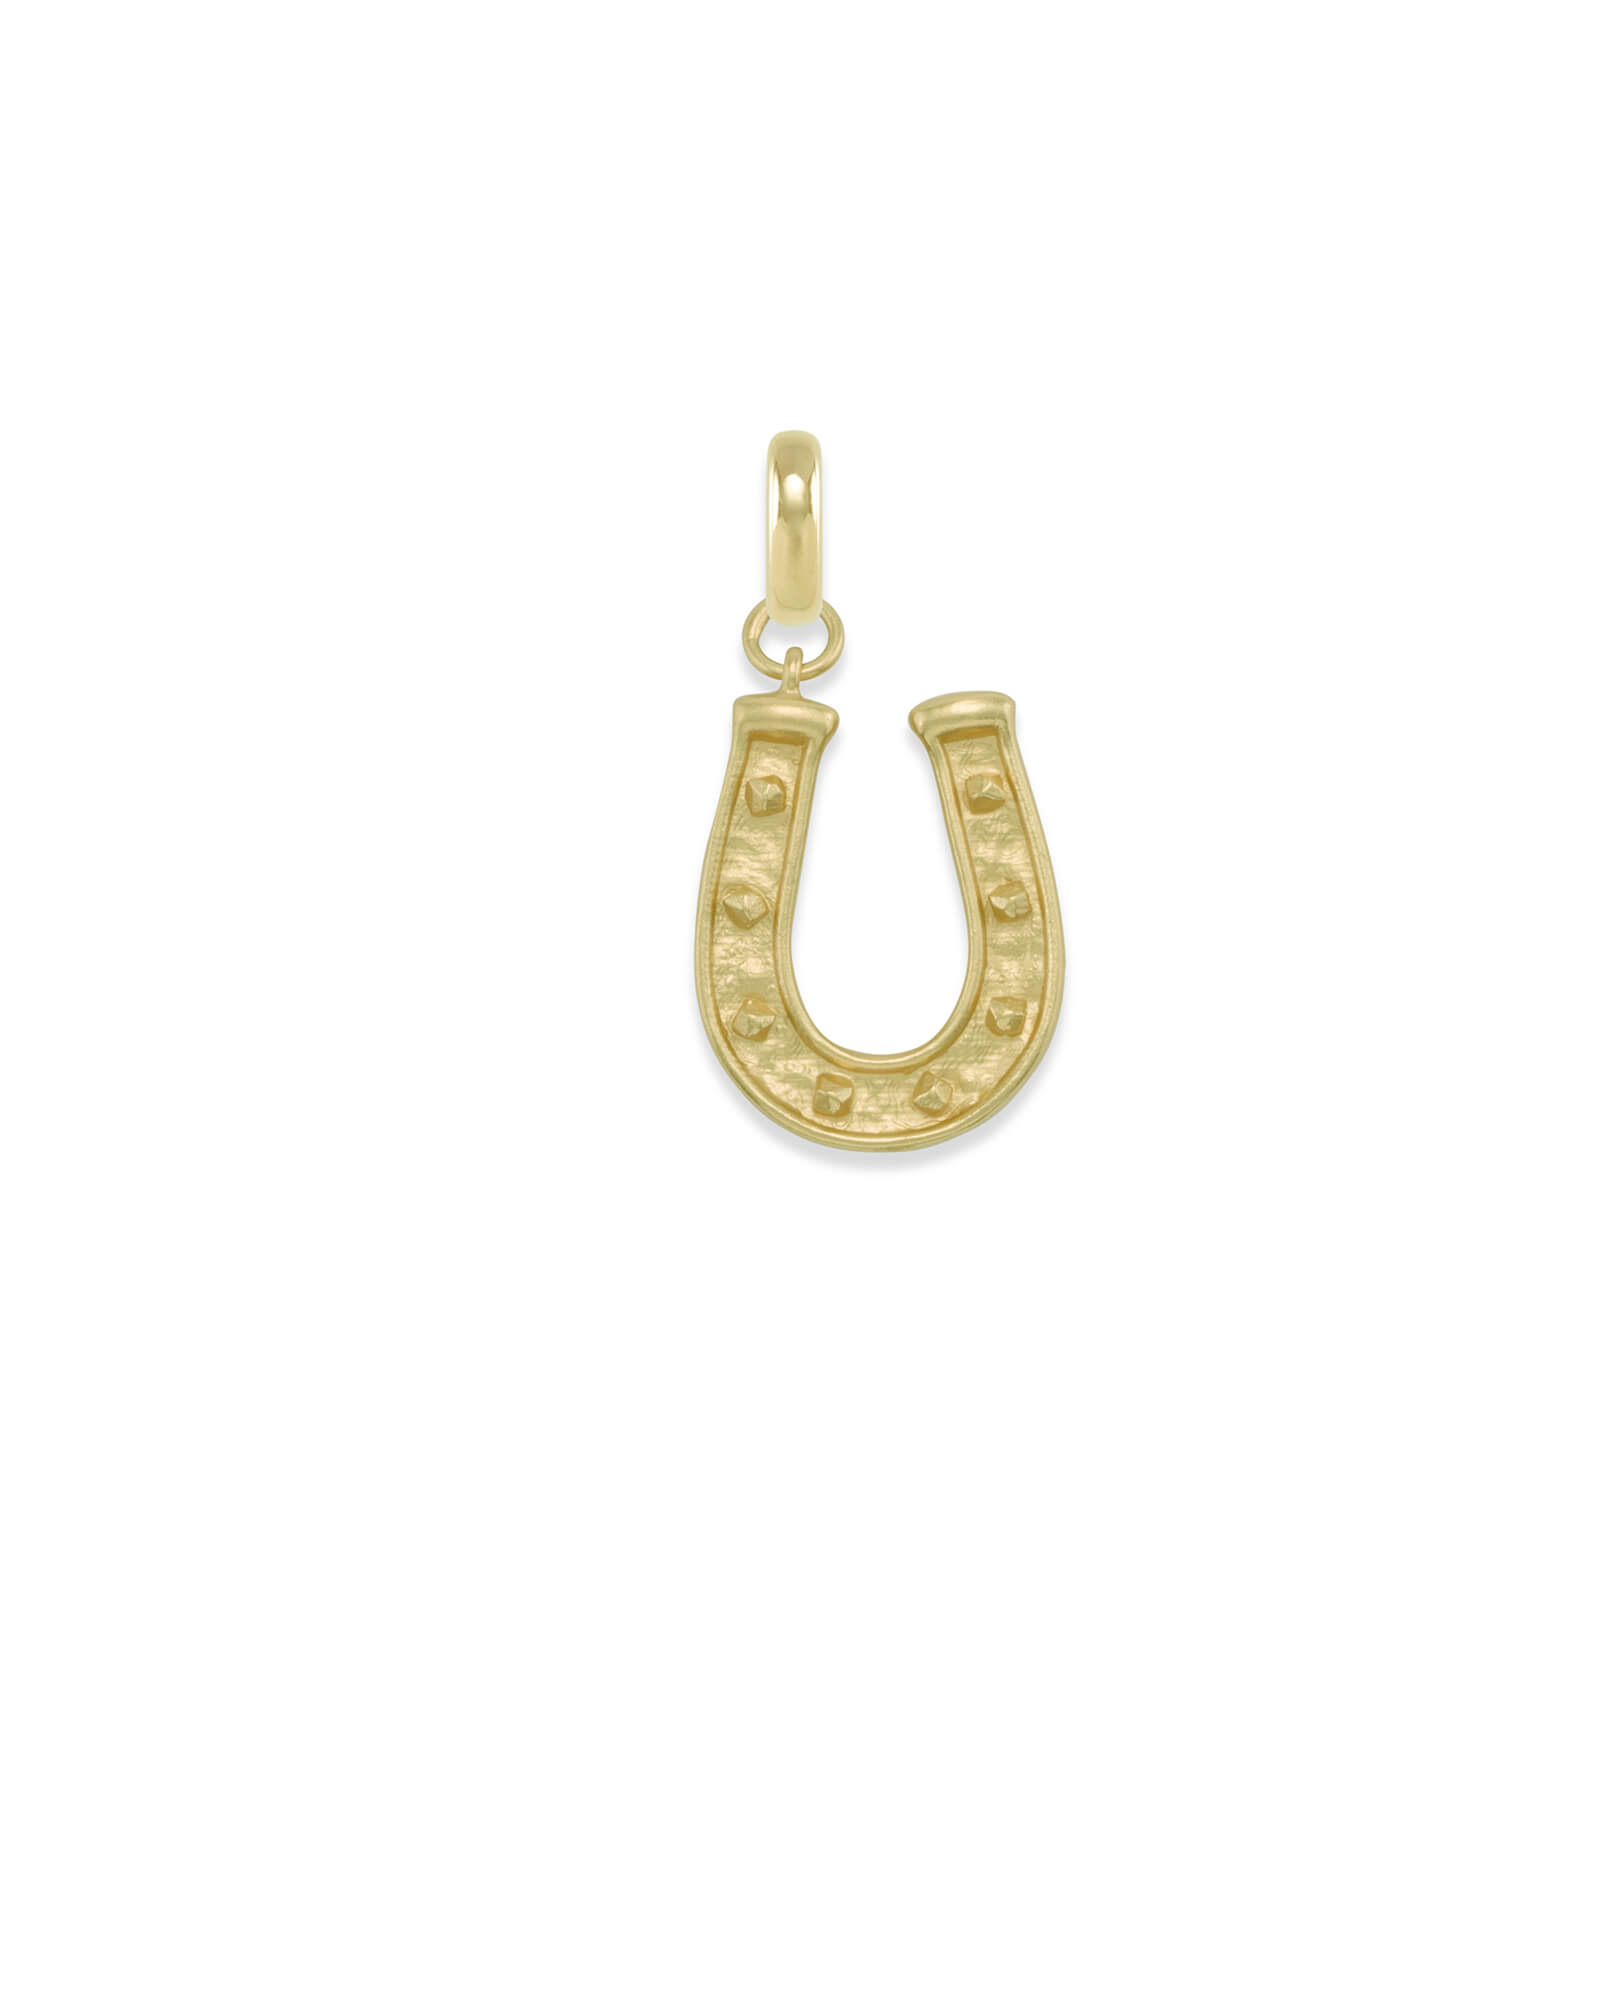 Horseshoe Charm in Gold